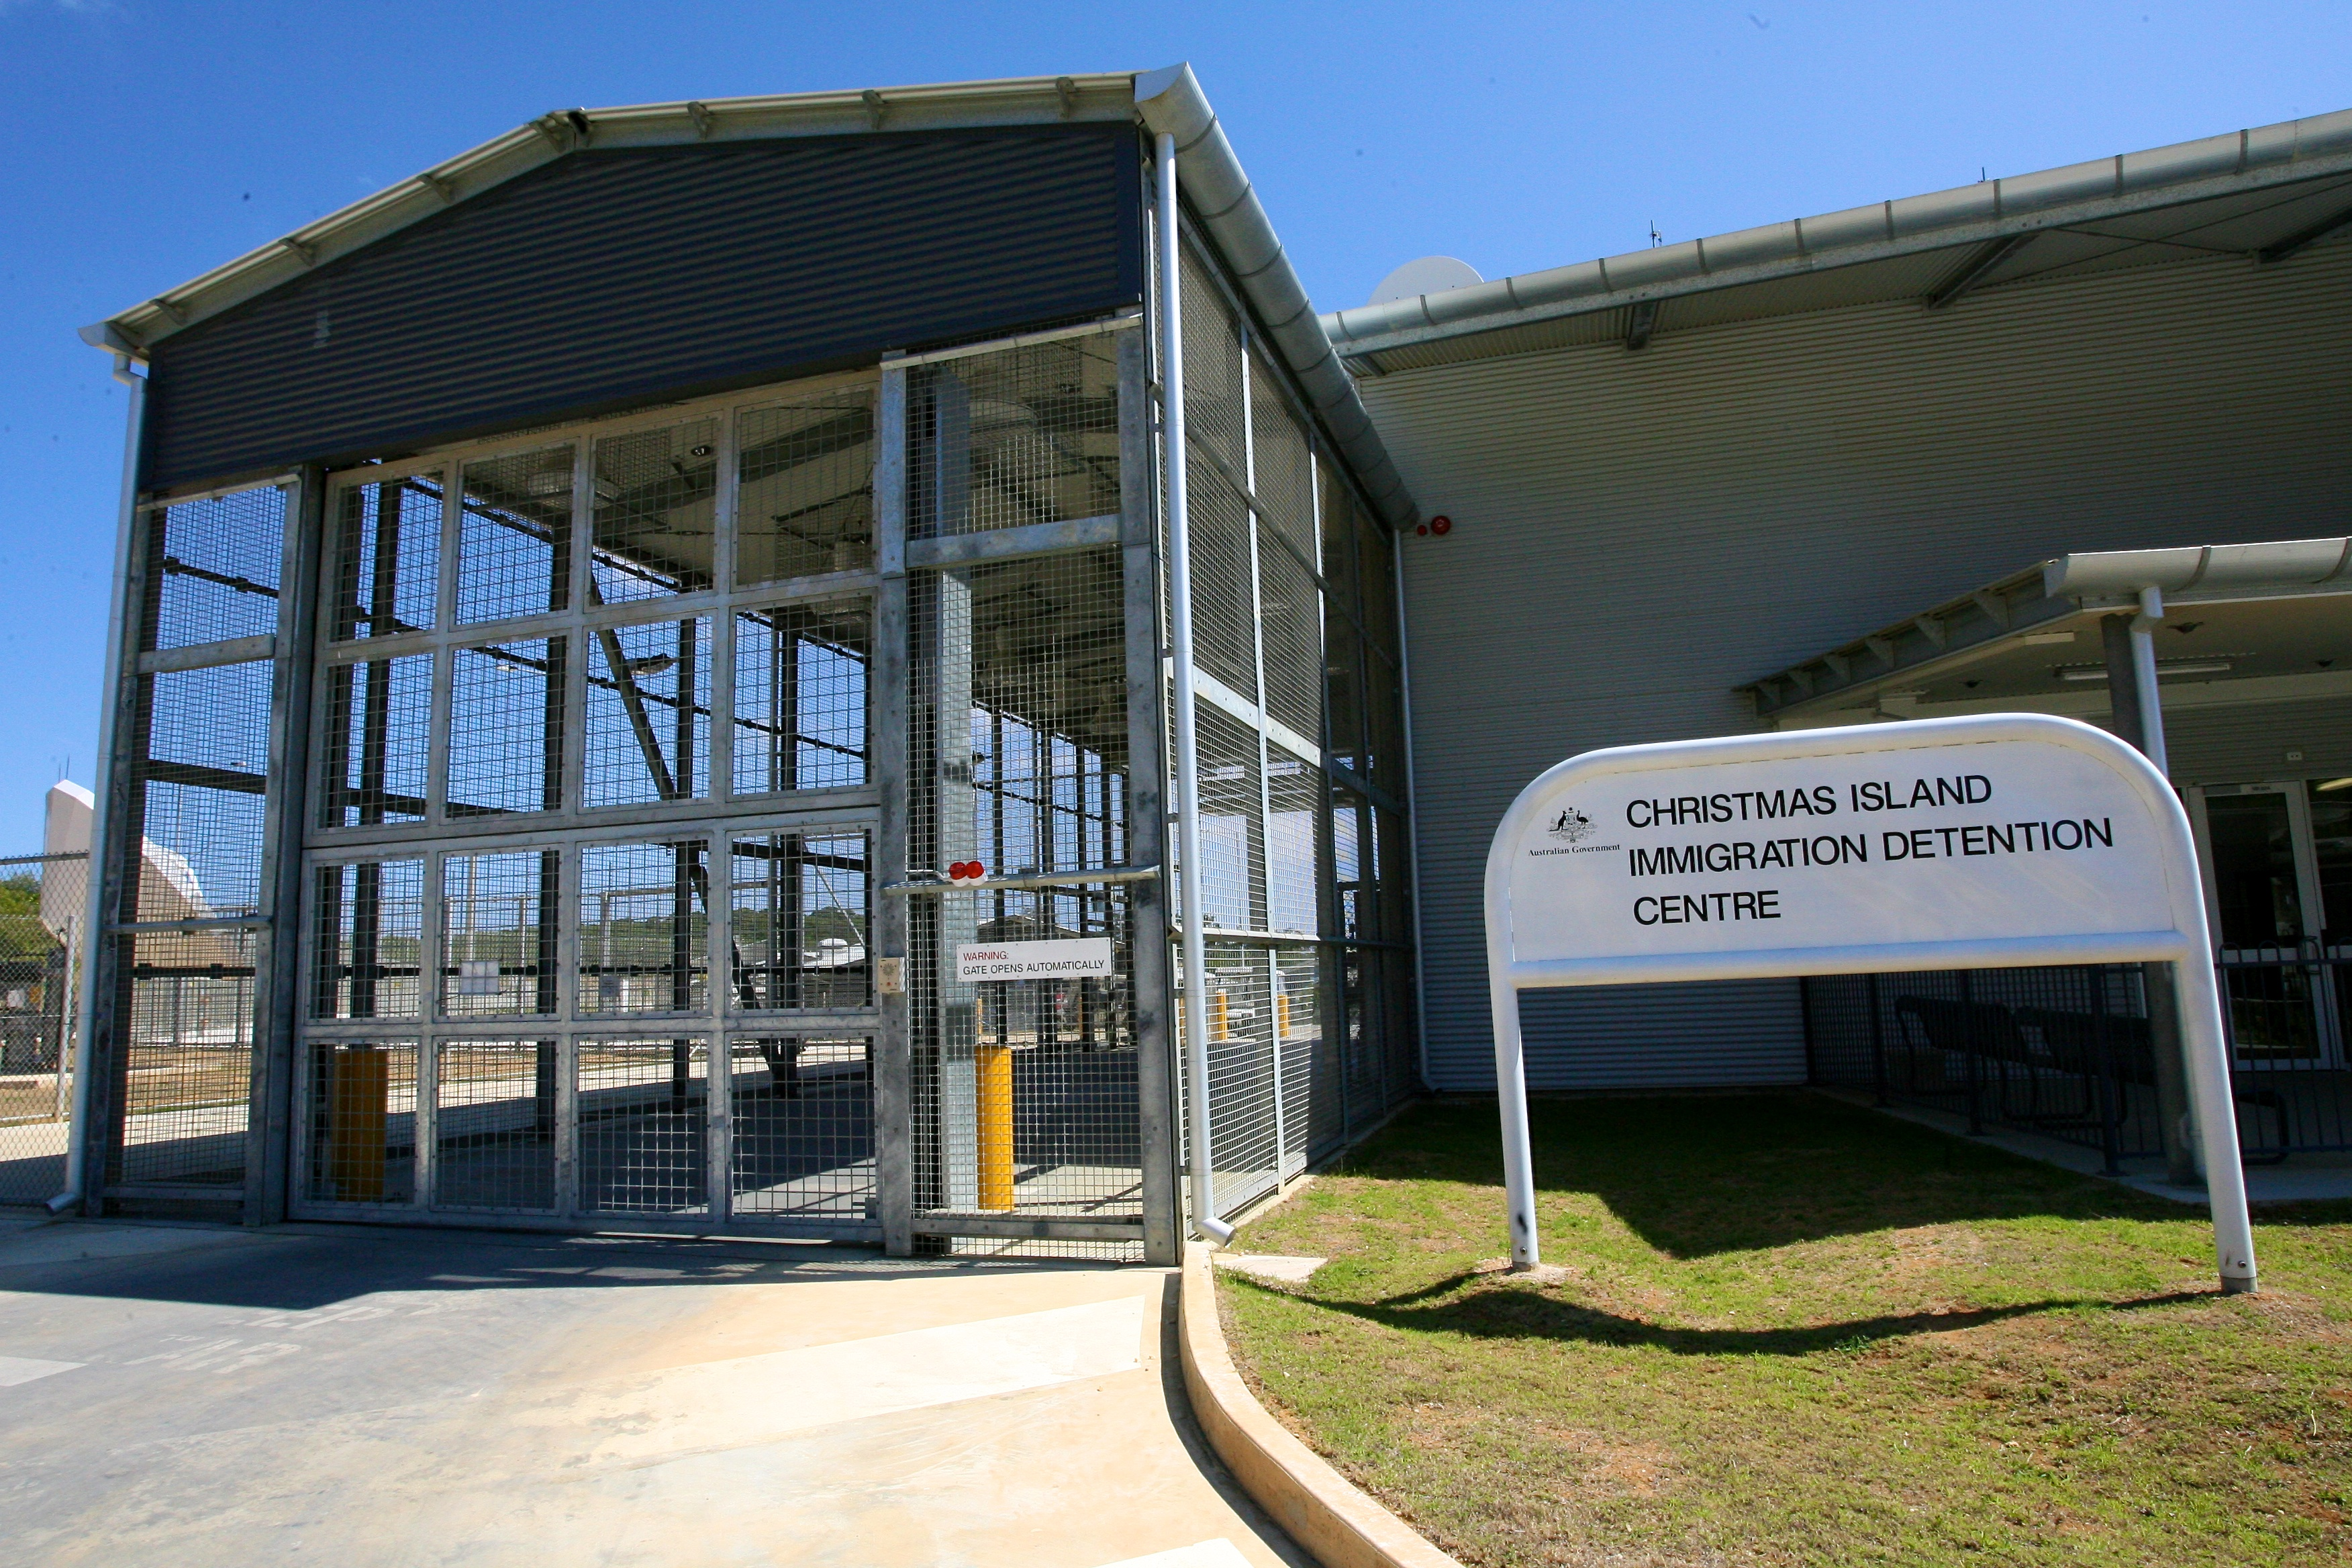 Christmas Island Immigration Detention Centre (Australia)